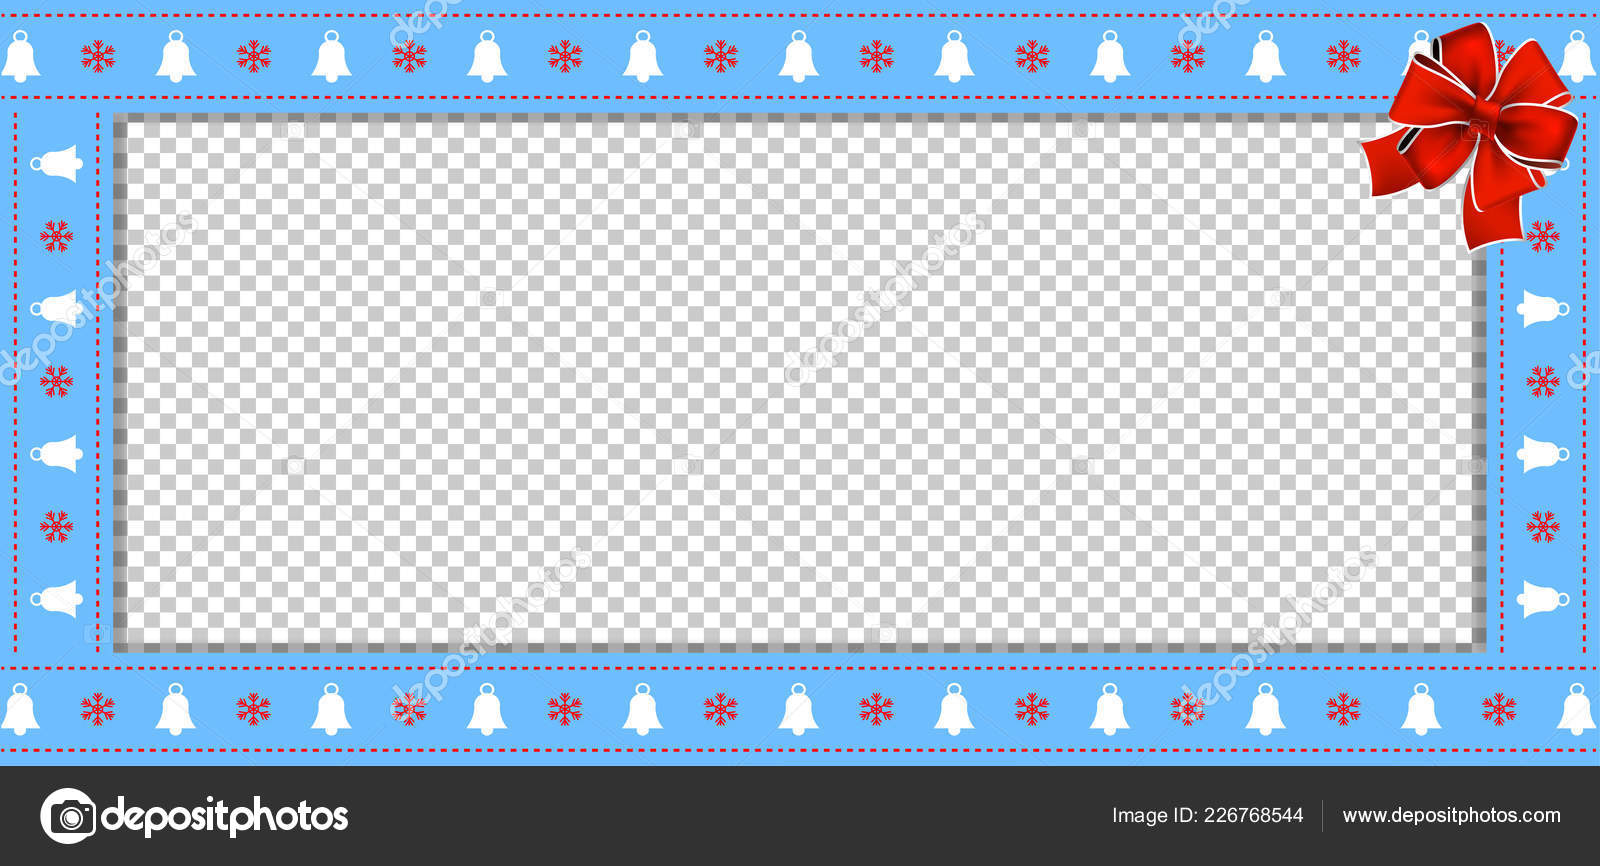 cute christmas or new year border with xmas bells snowflakes pattern and red bow on transparent background vector rectangle template frame scrapbooking